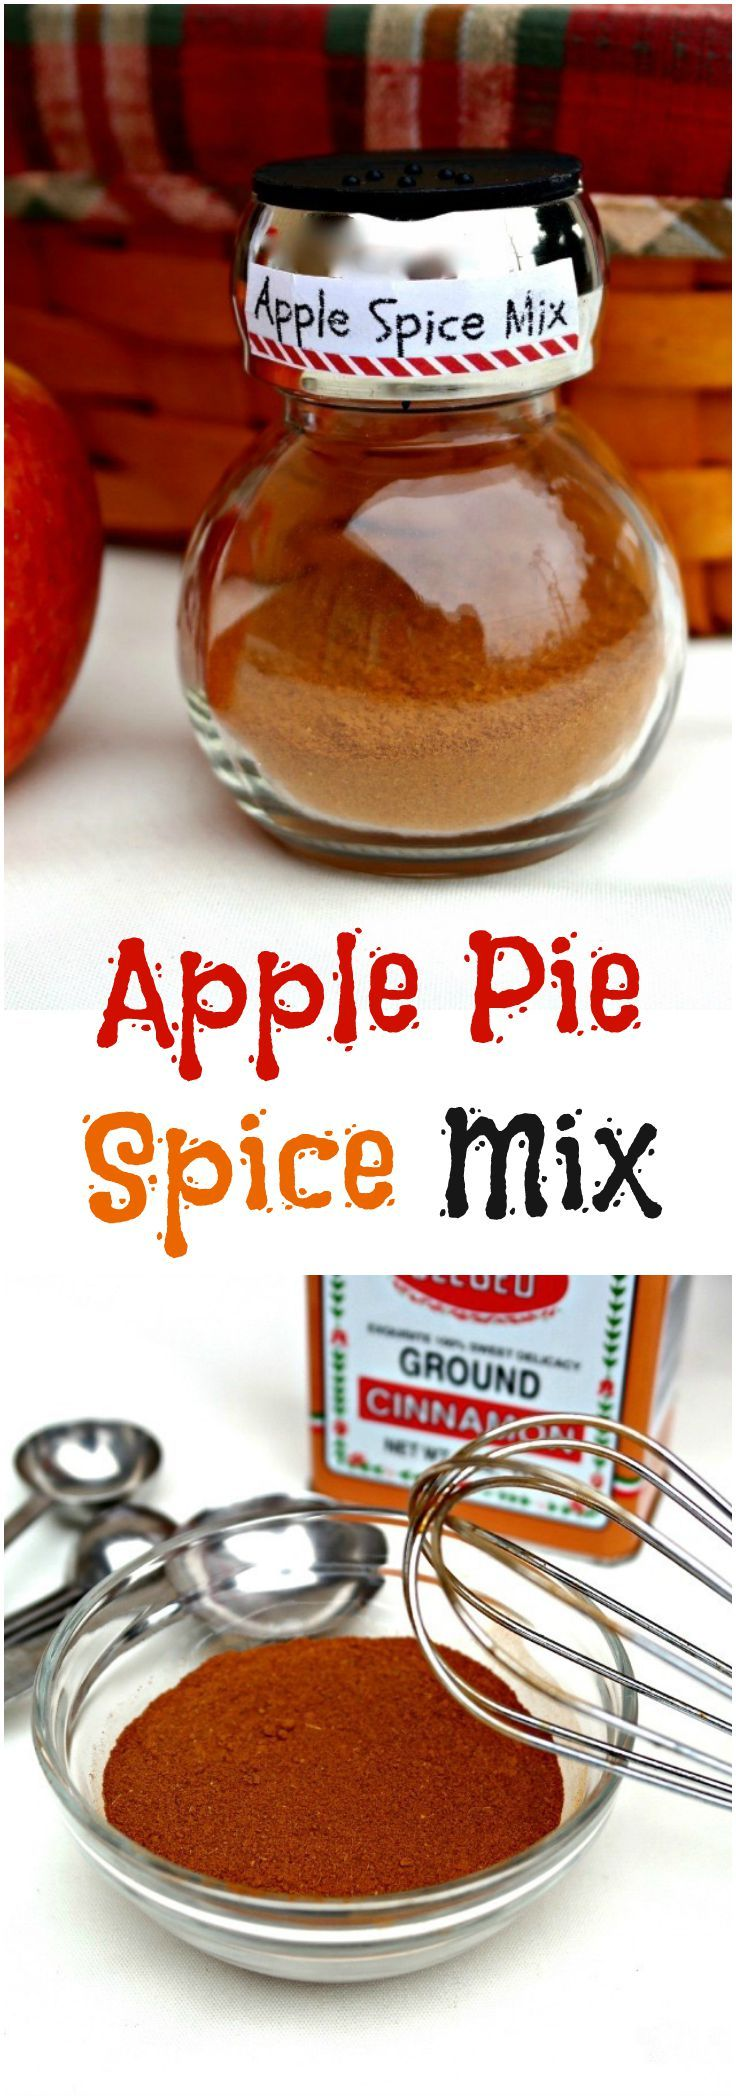 Apple Pie Spice Mix | Recipe | Apples, Healthy food and The o'jays